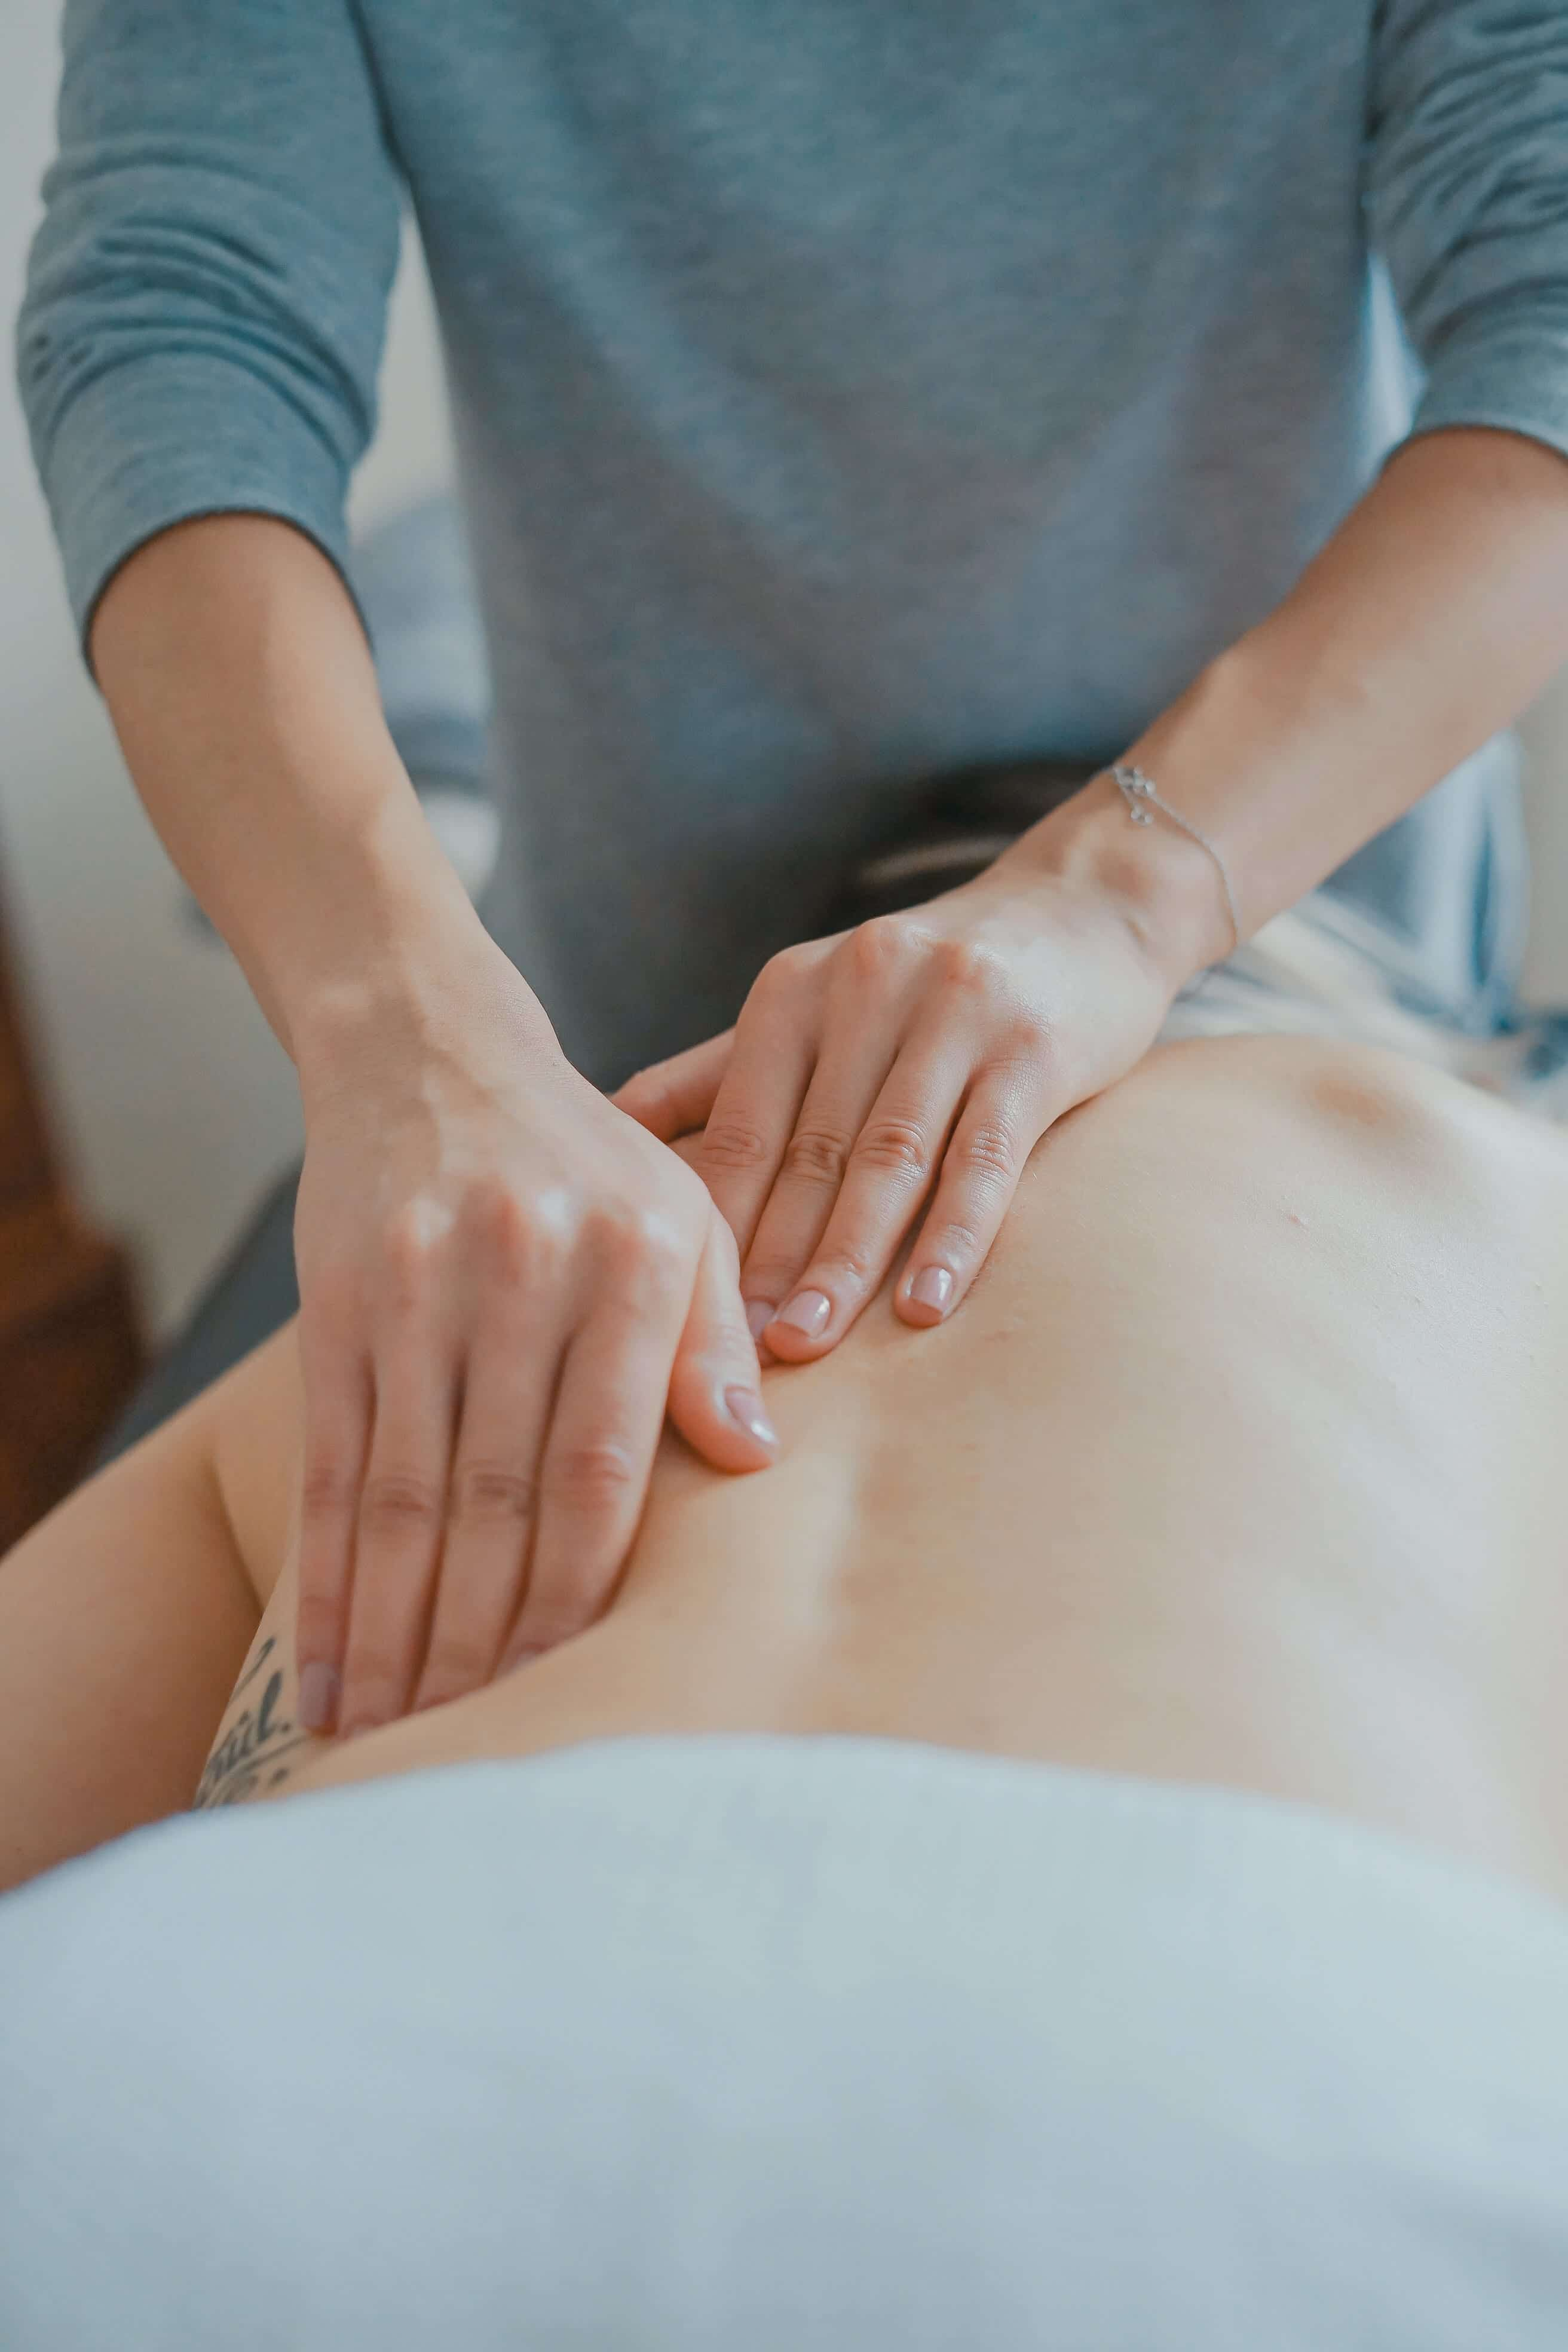 Patients Who Receive Chiropractic Care Less Likely to Abuse Opioids